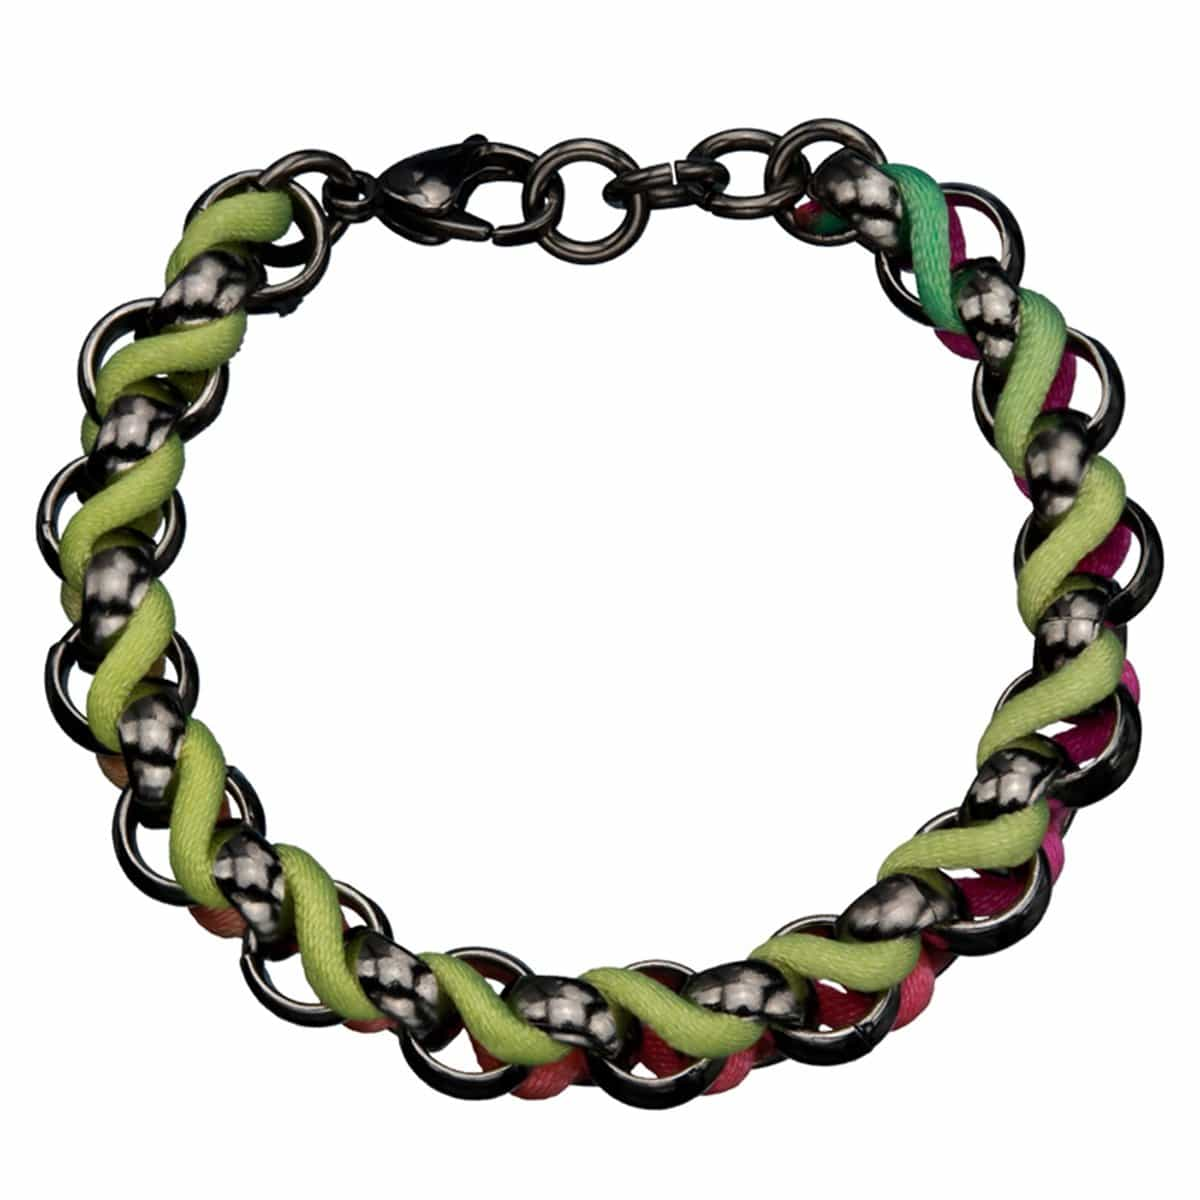 Black Stainless Steel with Muticolor Woven Fabric Bracelet